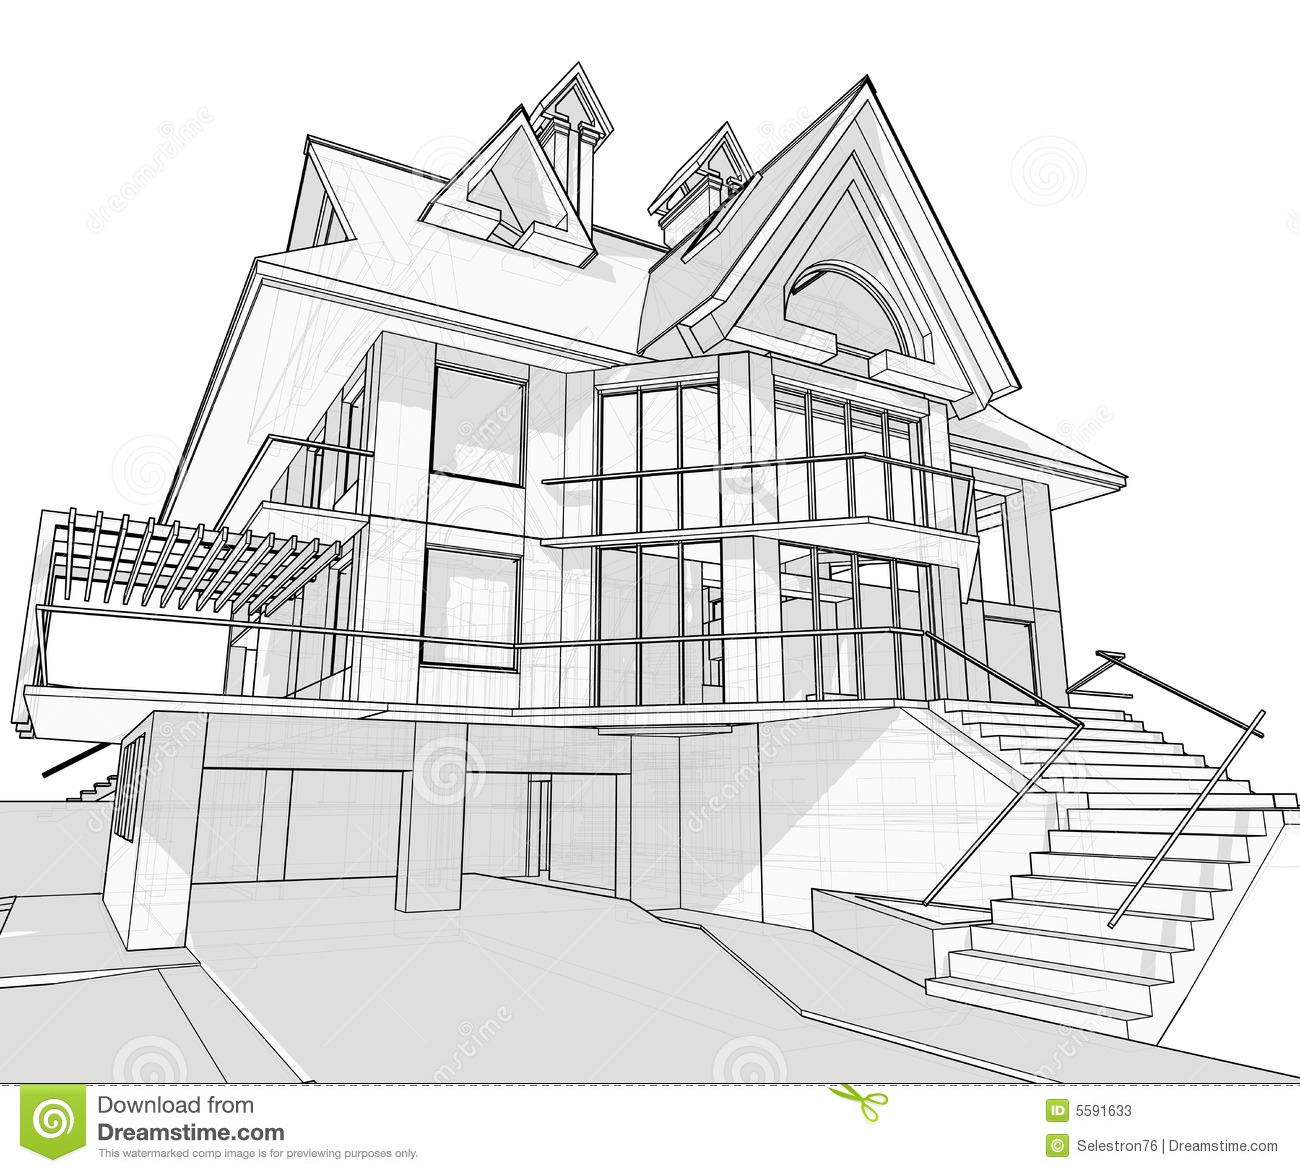 Architecture Houses Blueprints architecture houses drawings beautifule homes plans blueprints on